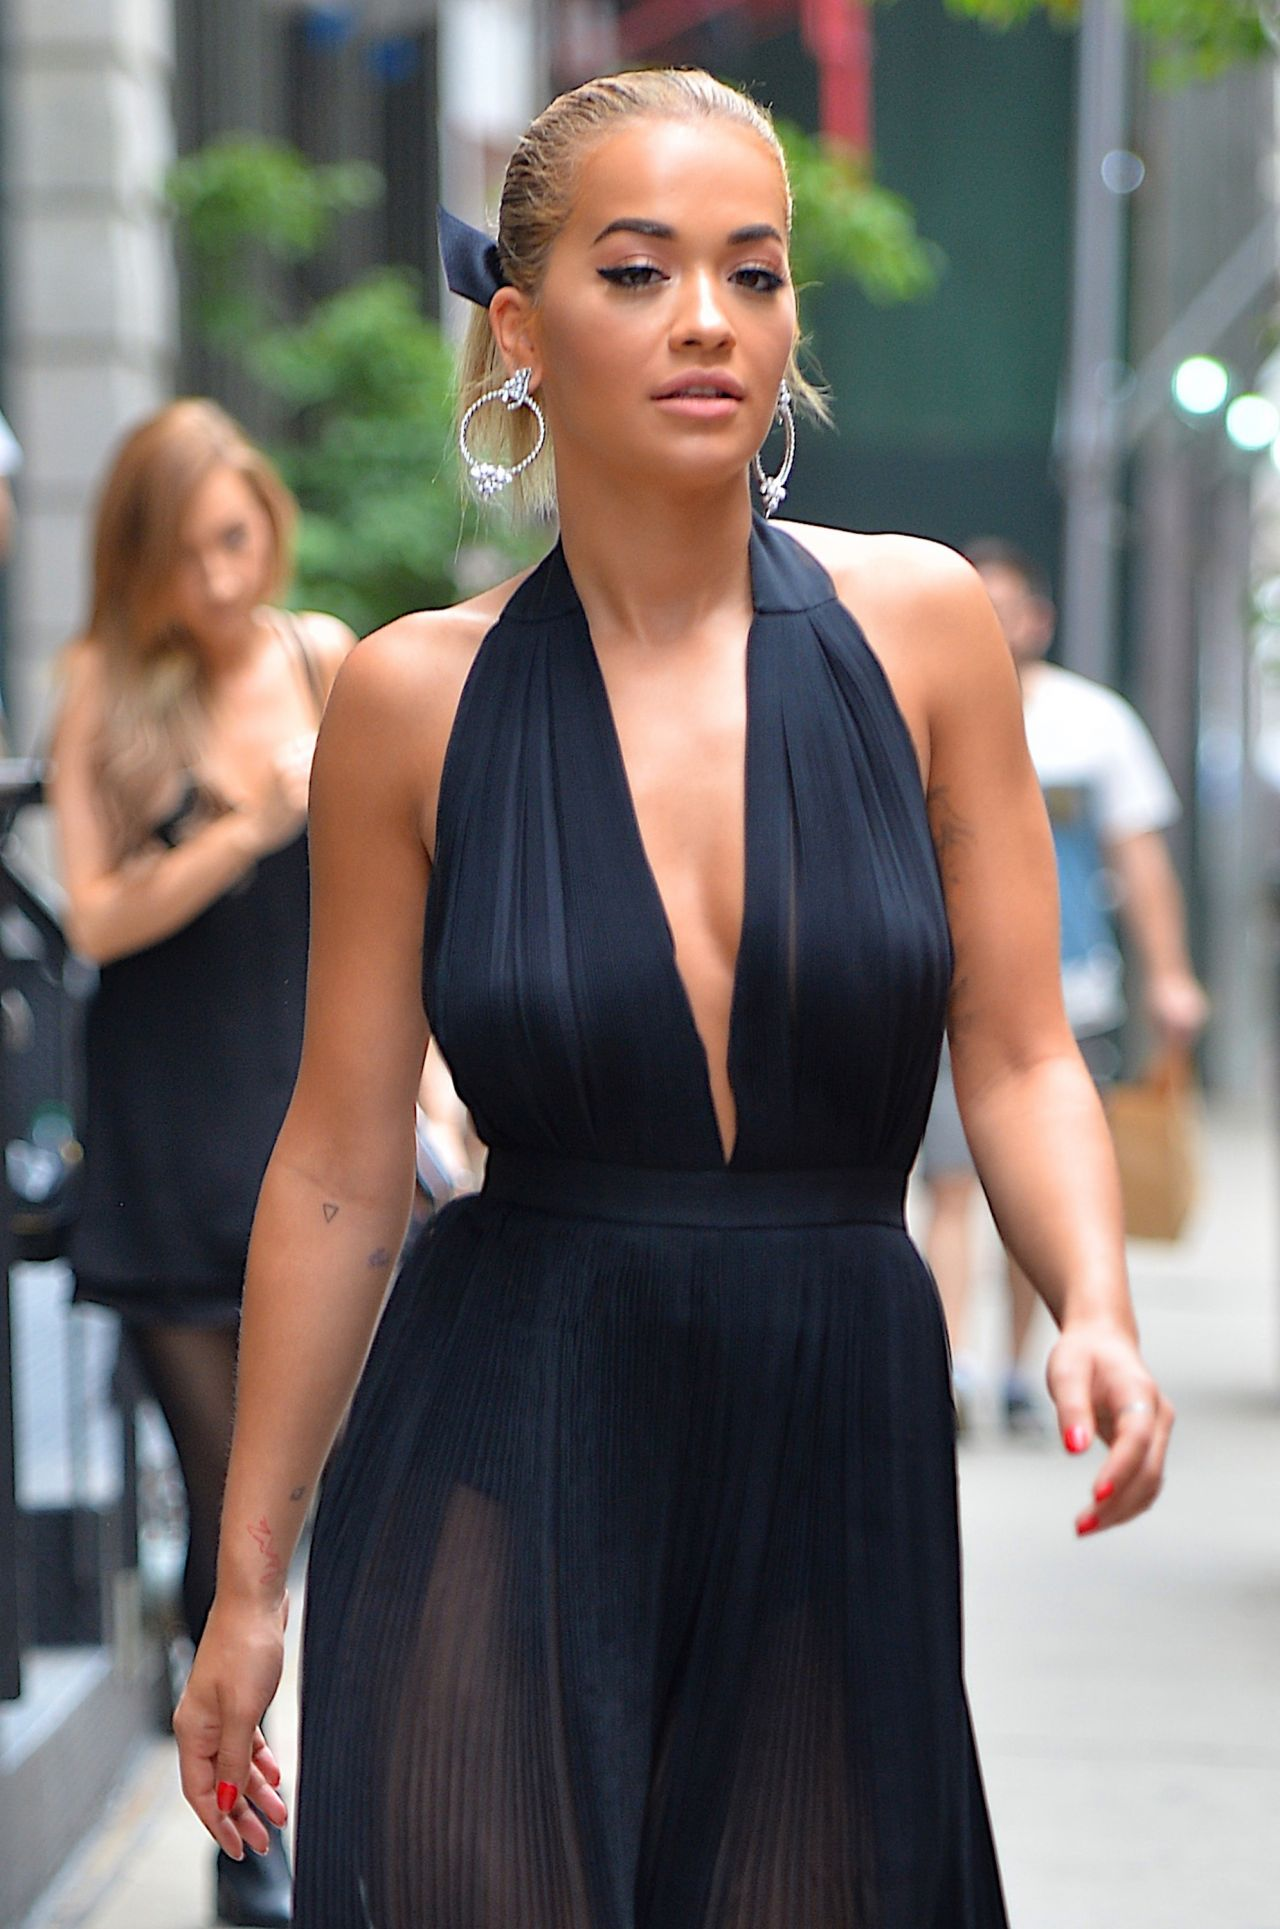 rita ora filming america 39 s next top model in nyc 7 15 2016 On next models nyc